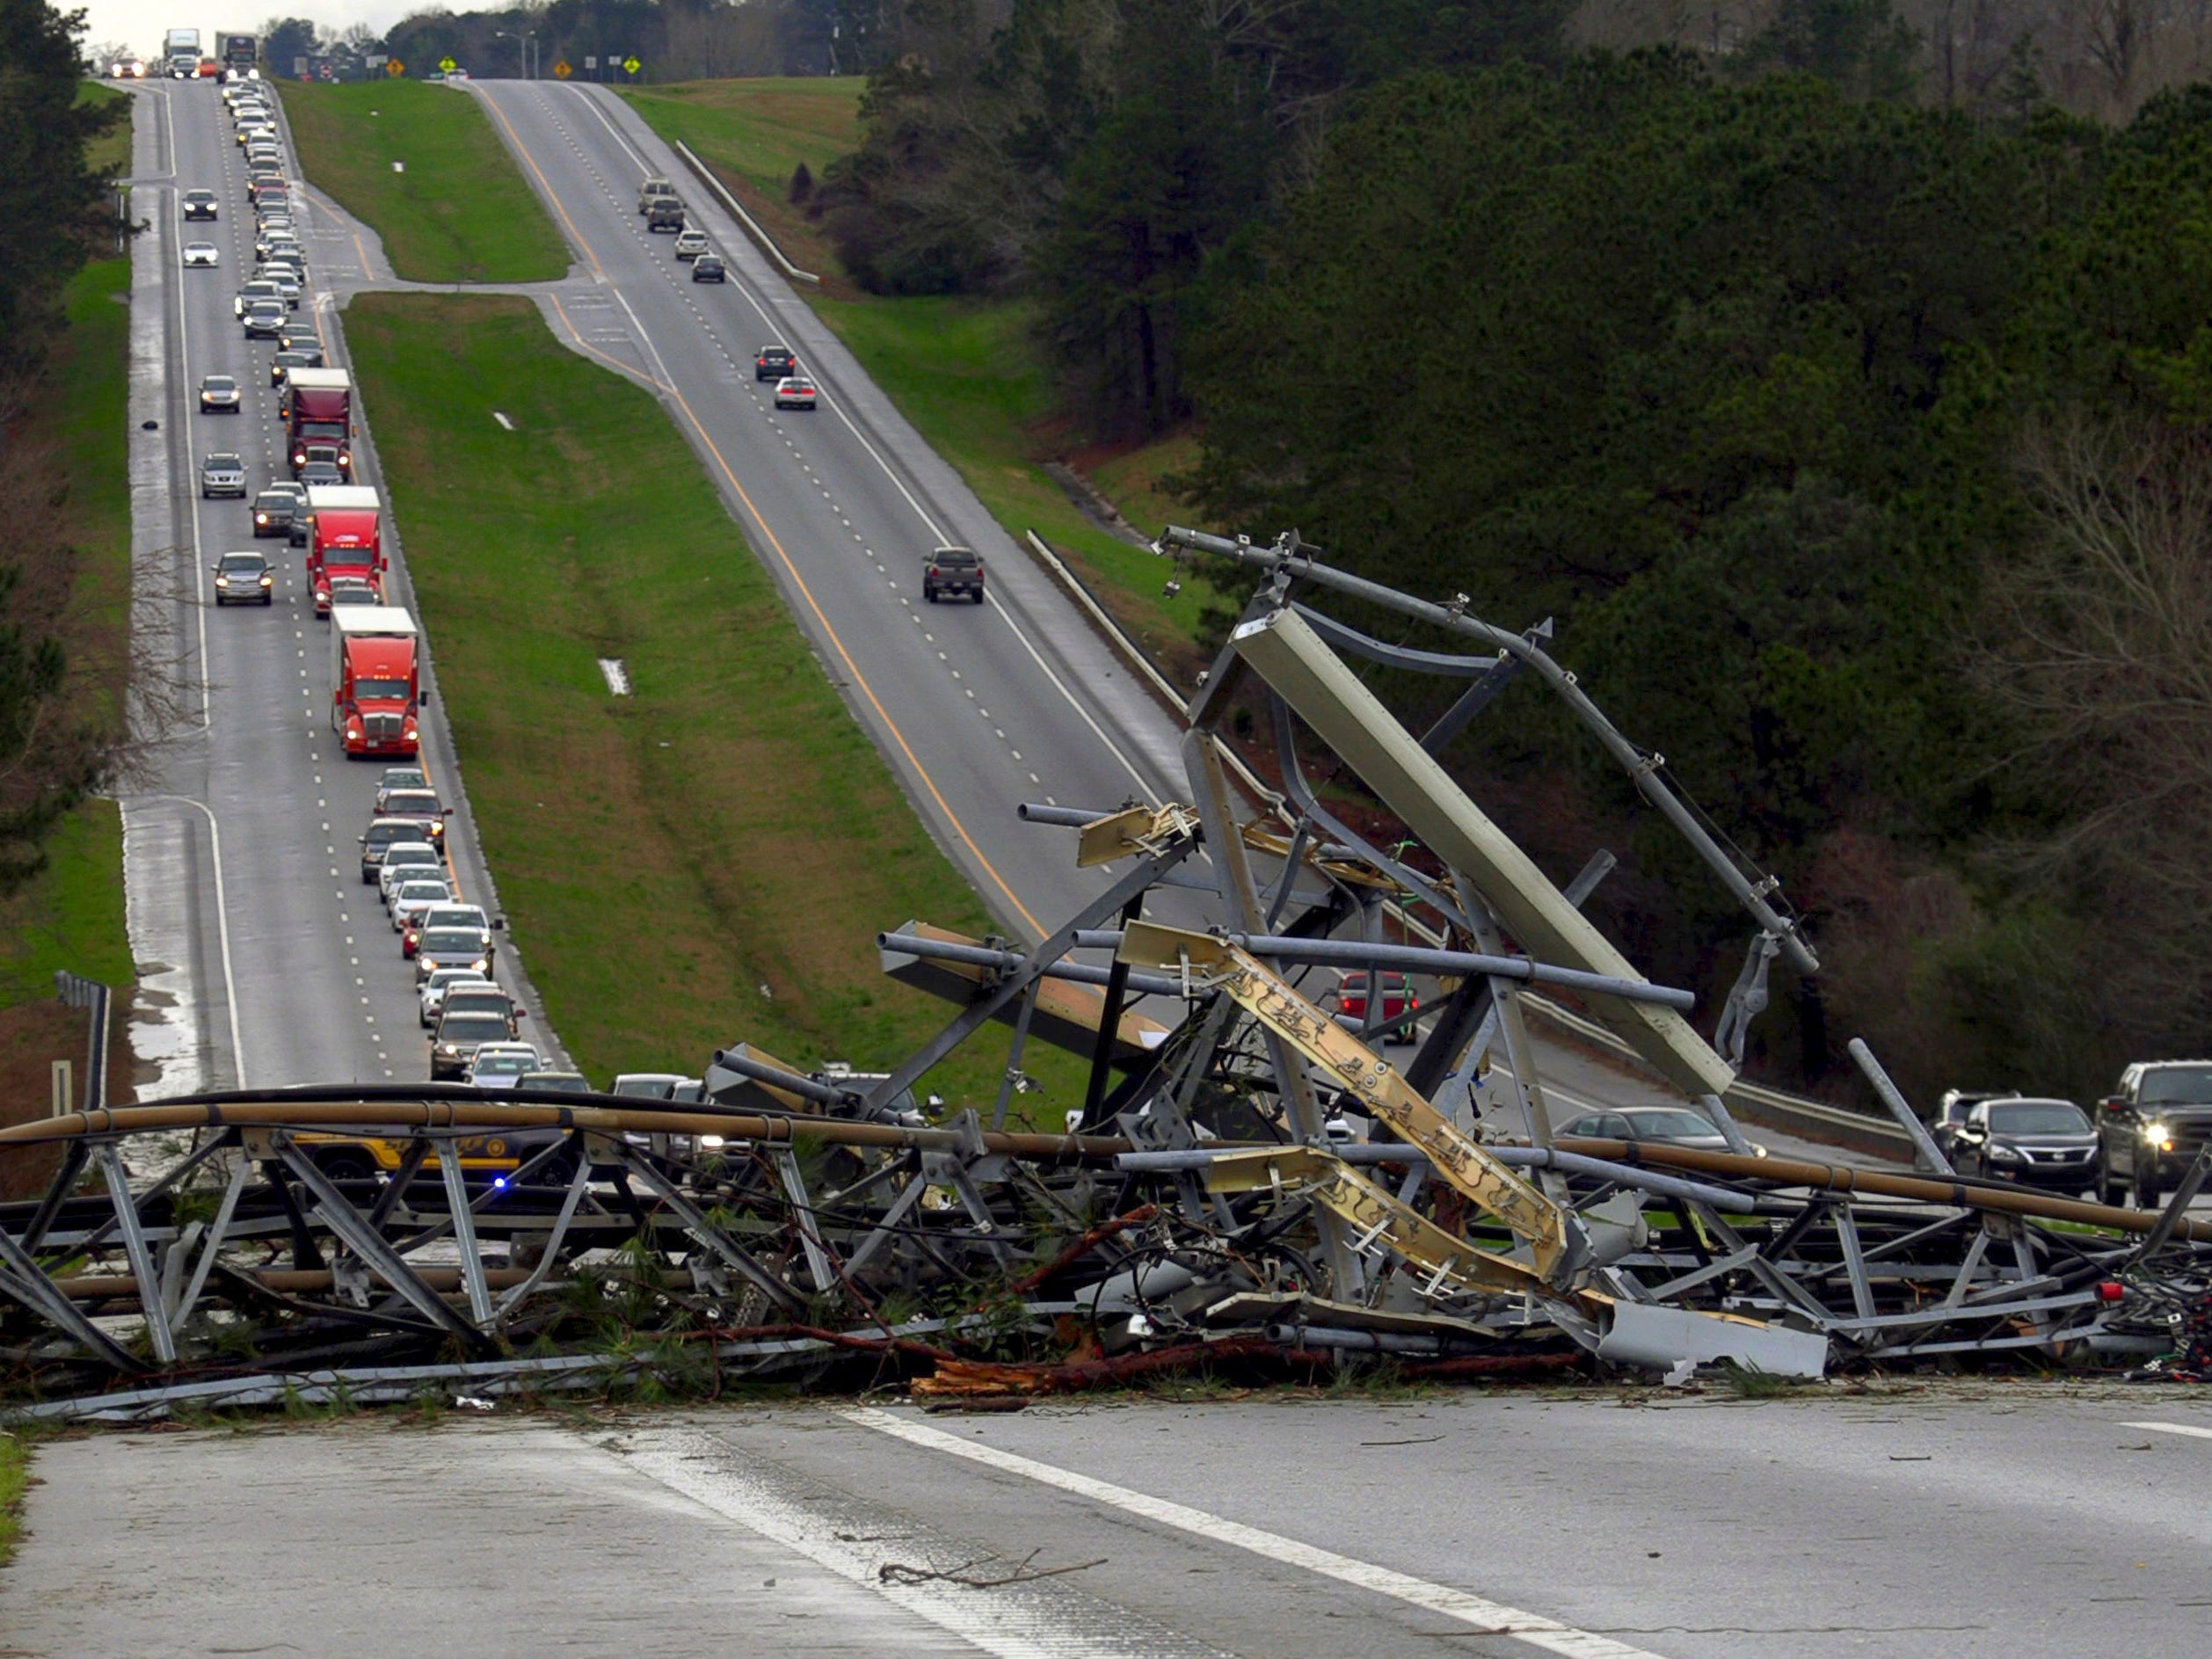 A fallen cell tower lies across U.S. Route 280 highway in Lee County, Ala., in the Smiths Station community after what appeared to be a tornado struck in the area Sunday, March 3, 2019. Severe storms destroyed mobile homes, snapped trees and left a trail of destruction amid weather warnings extending into Georgia, Florida and South Carolina, authorities said. (Mike Haskey/Ledger-Enquirer via AP) ORG XMIT: GACOL701